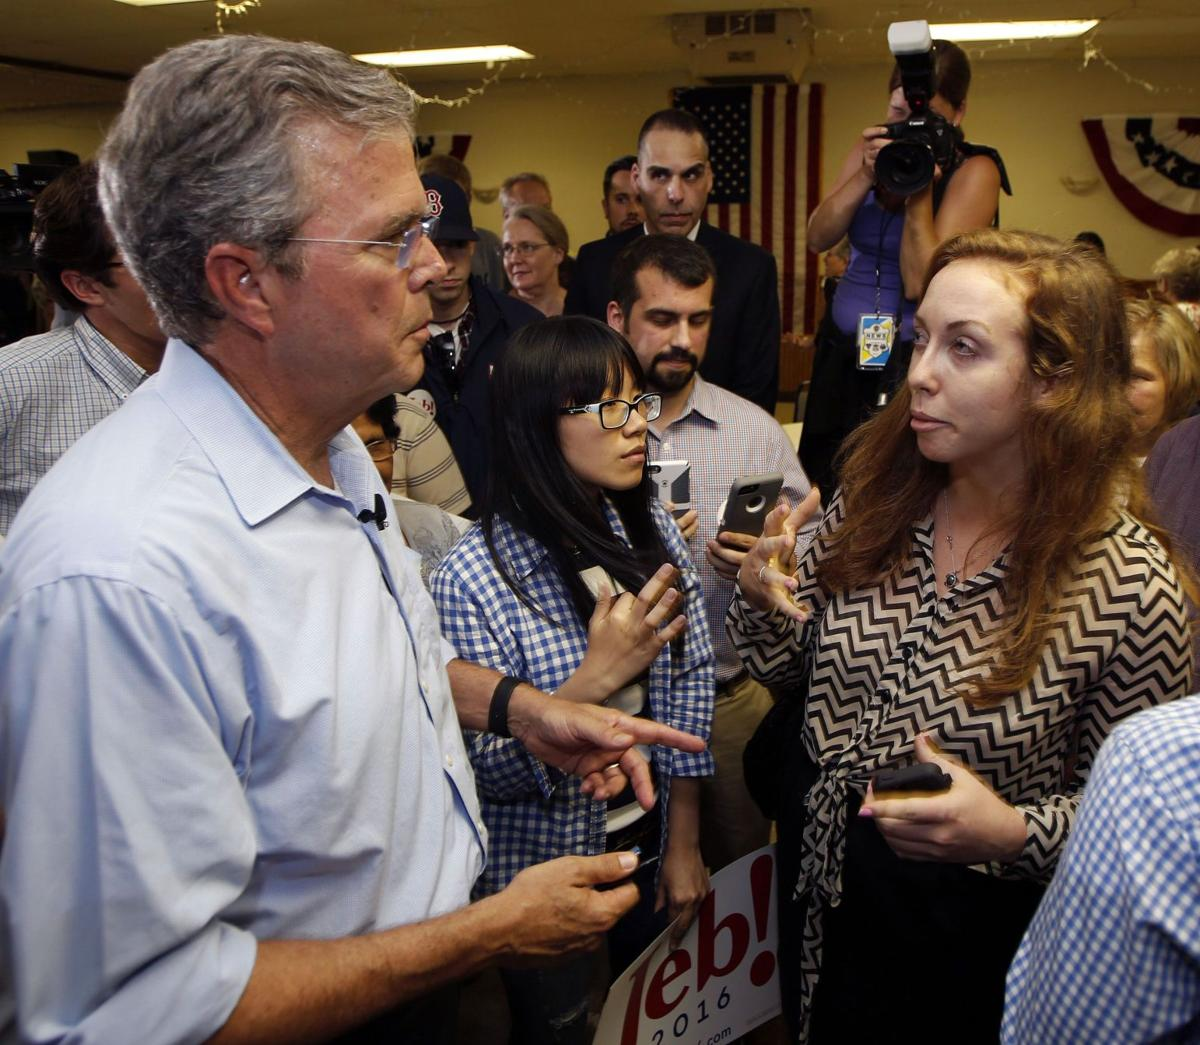 GOP candidate Jeb Bush to visit Spartanburg